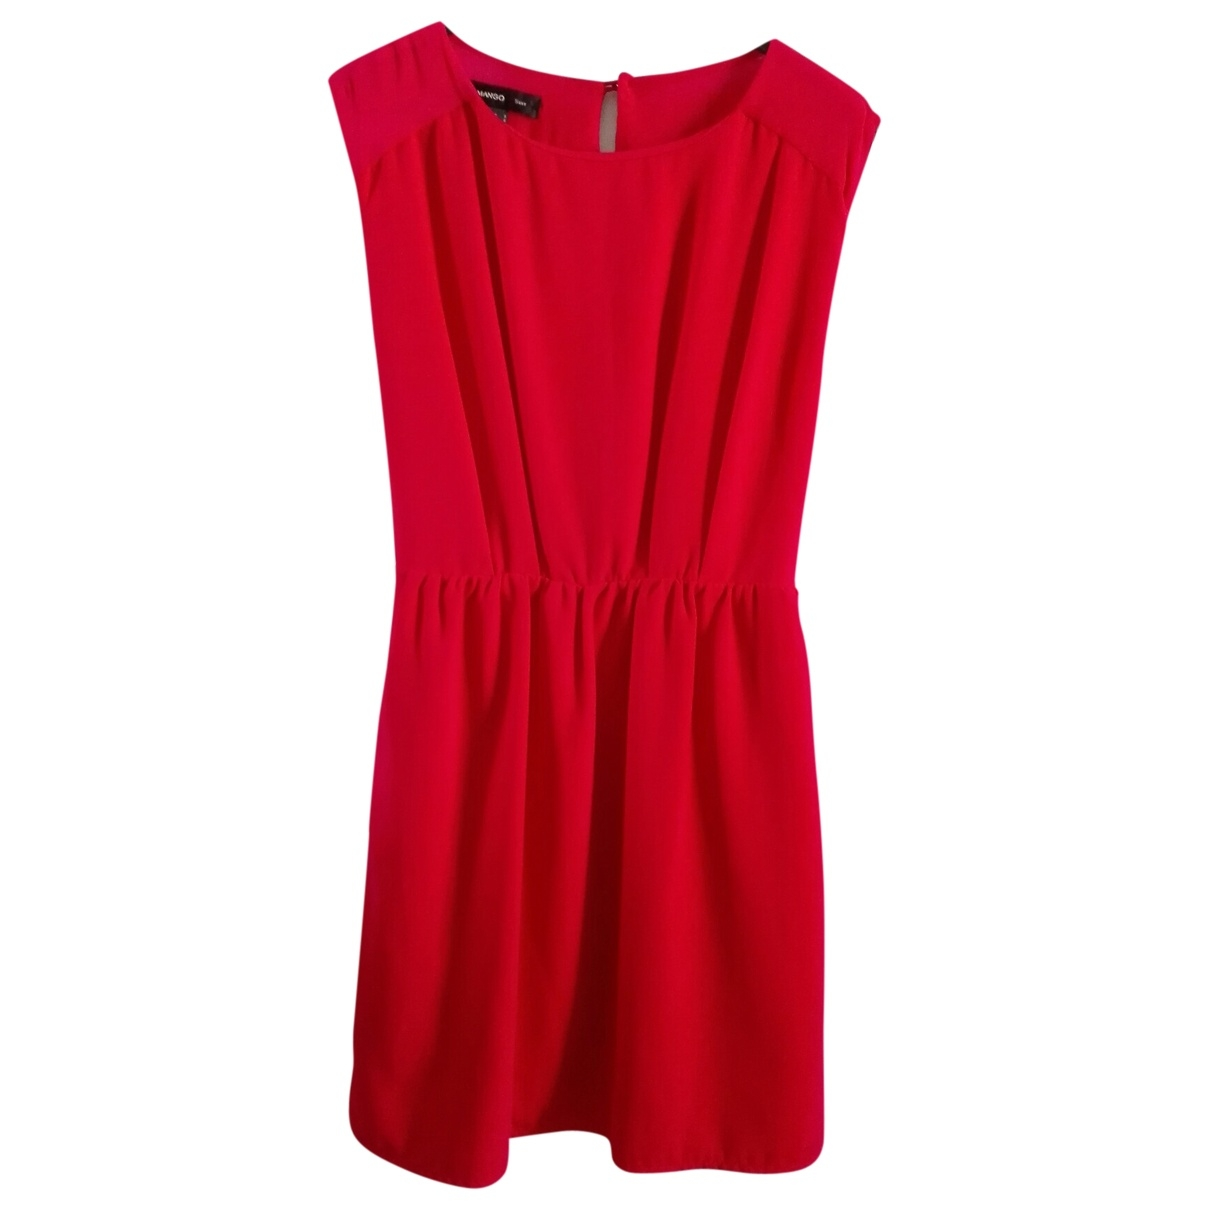 Mango \N Red dress for Women S International